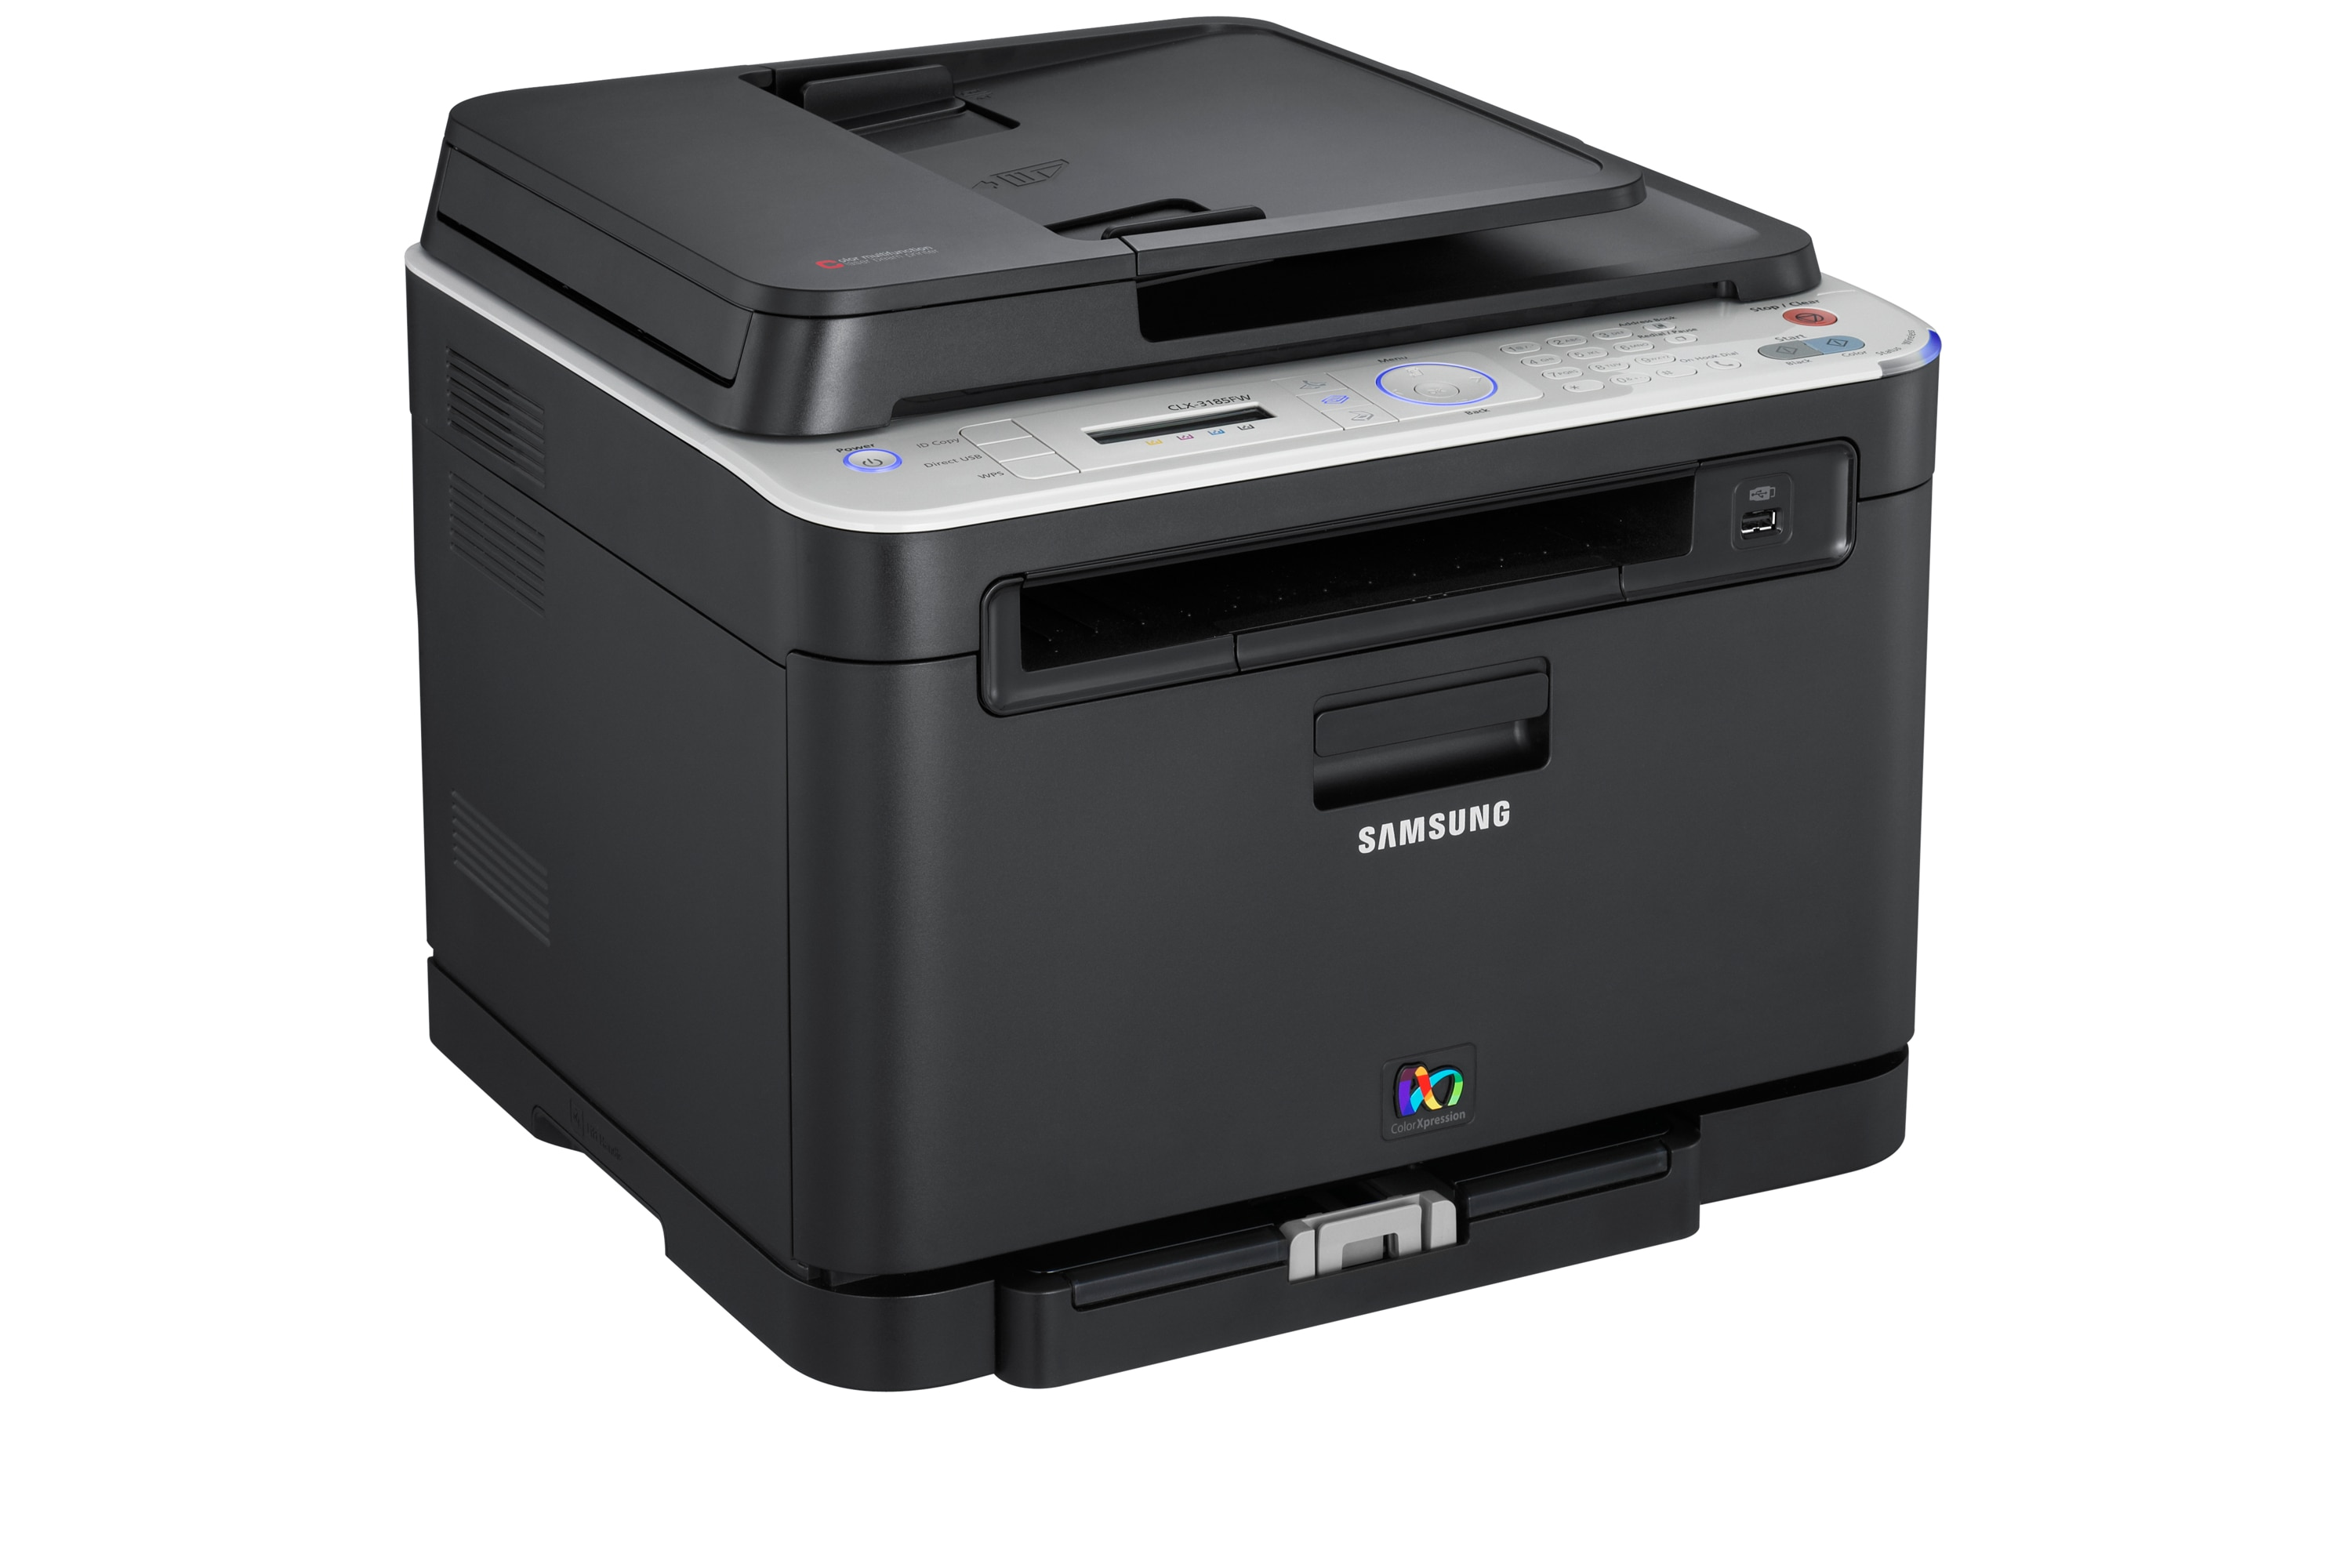 CLX-3185FW 16PPM Colour Laser Multifunction Printer